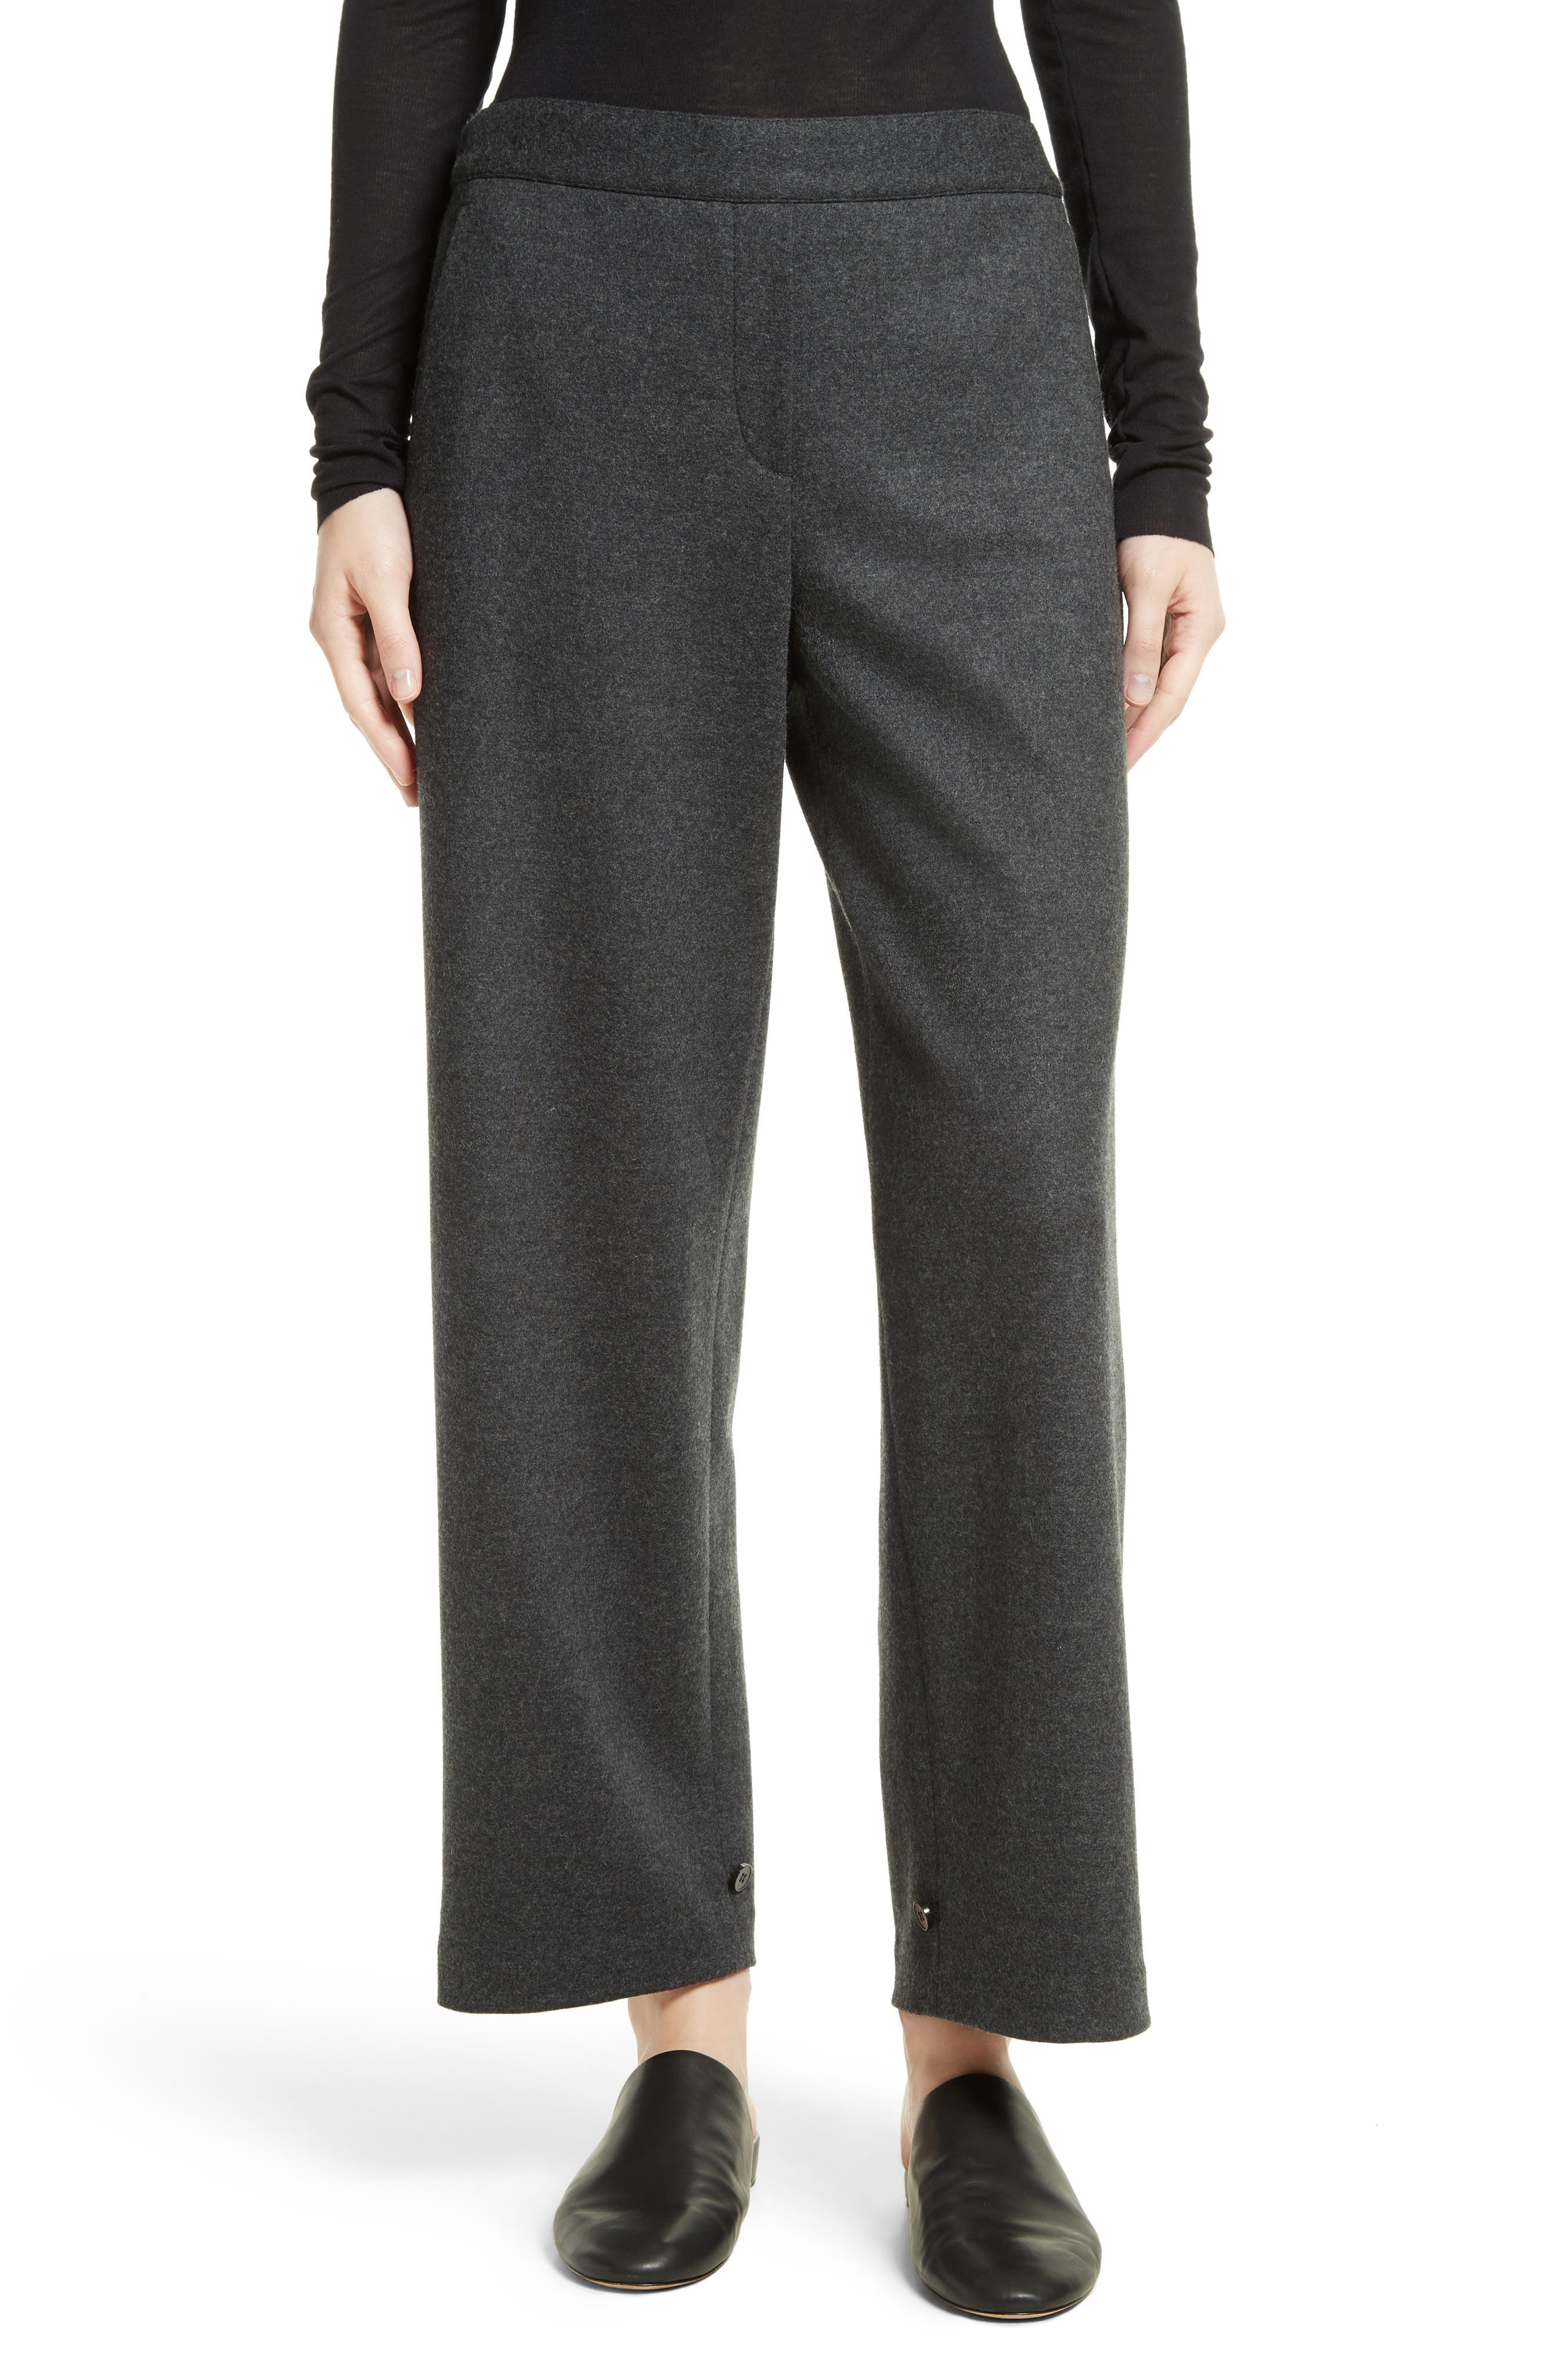 Genie Flannel Knit Pants,                         Main,                         color, Dark Charcoal